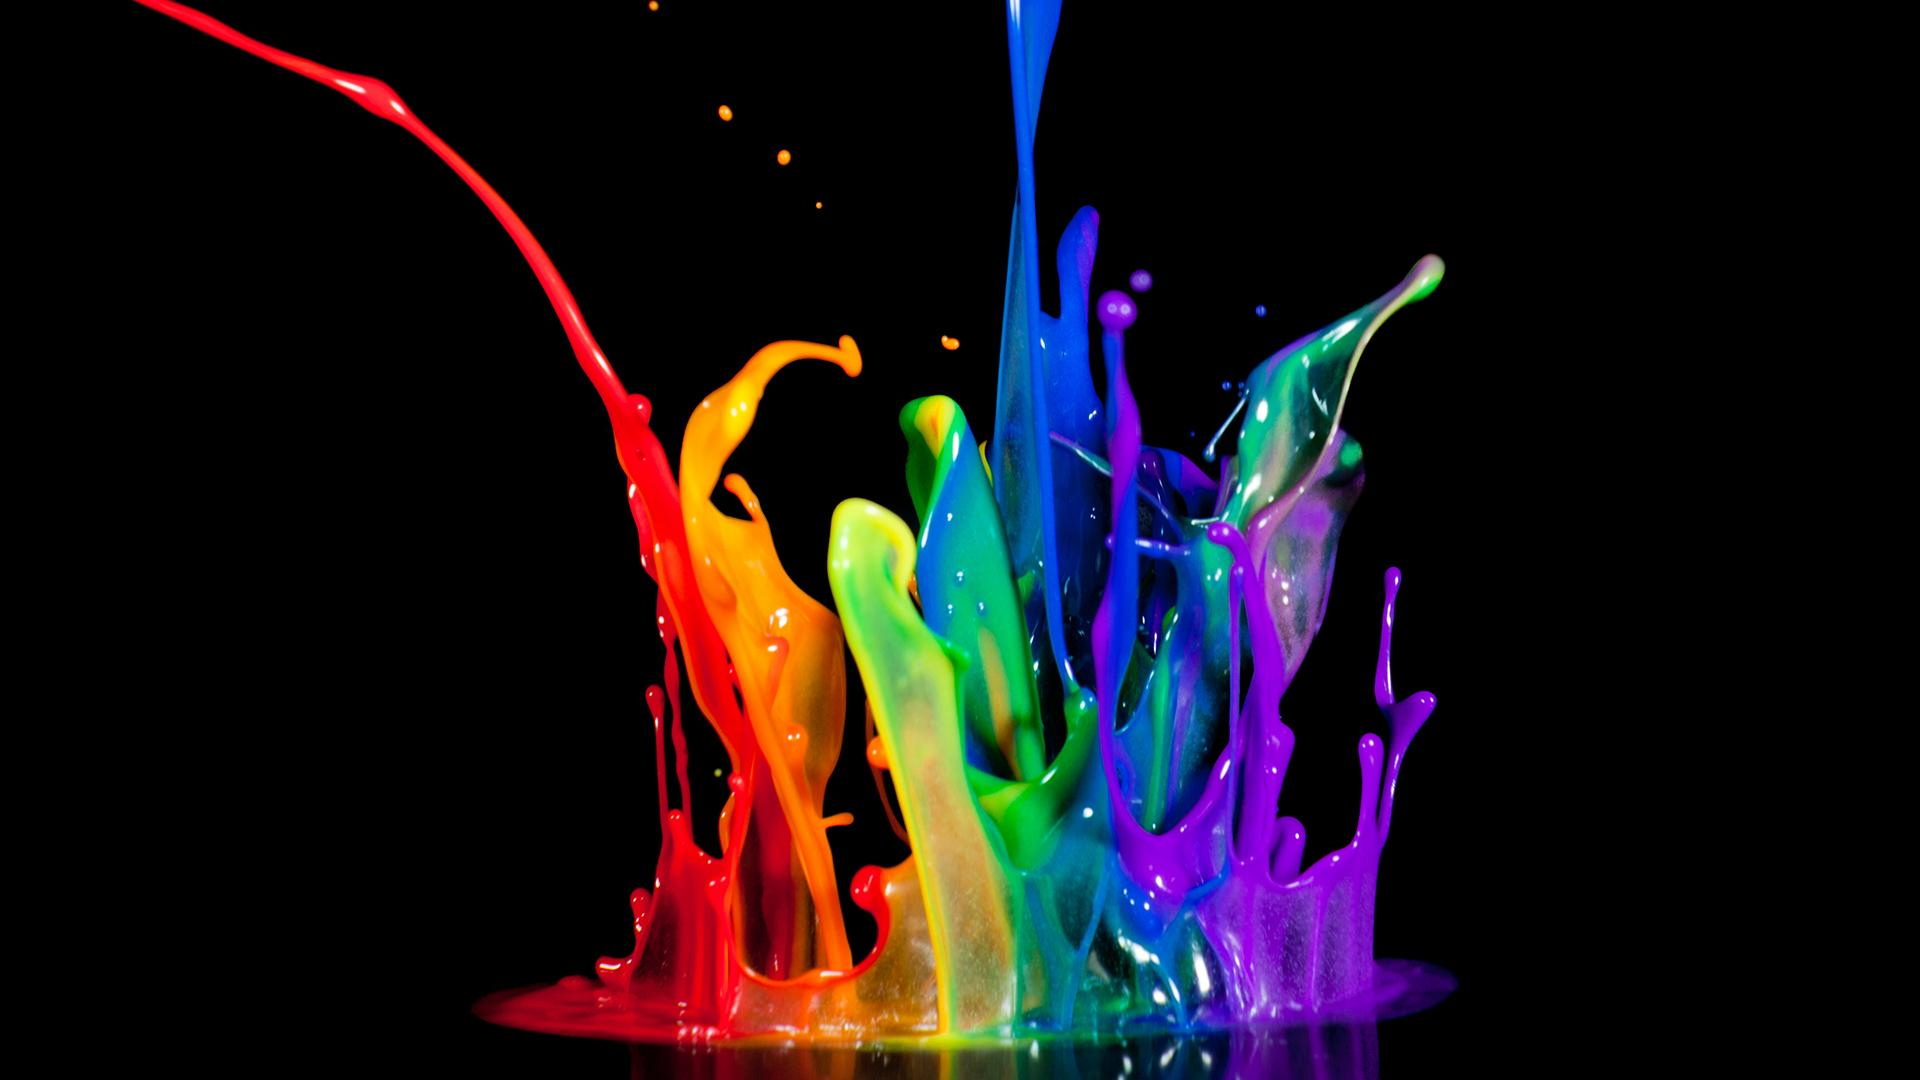 Cool Phone Wallpapers Tumblr 1629 Wallpapers Coolz HD Wallpaper 1920x1080